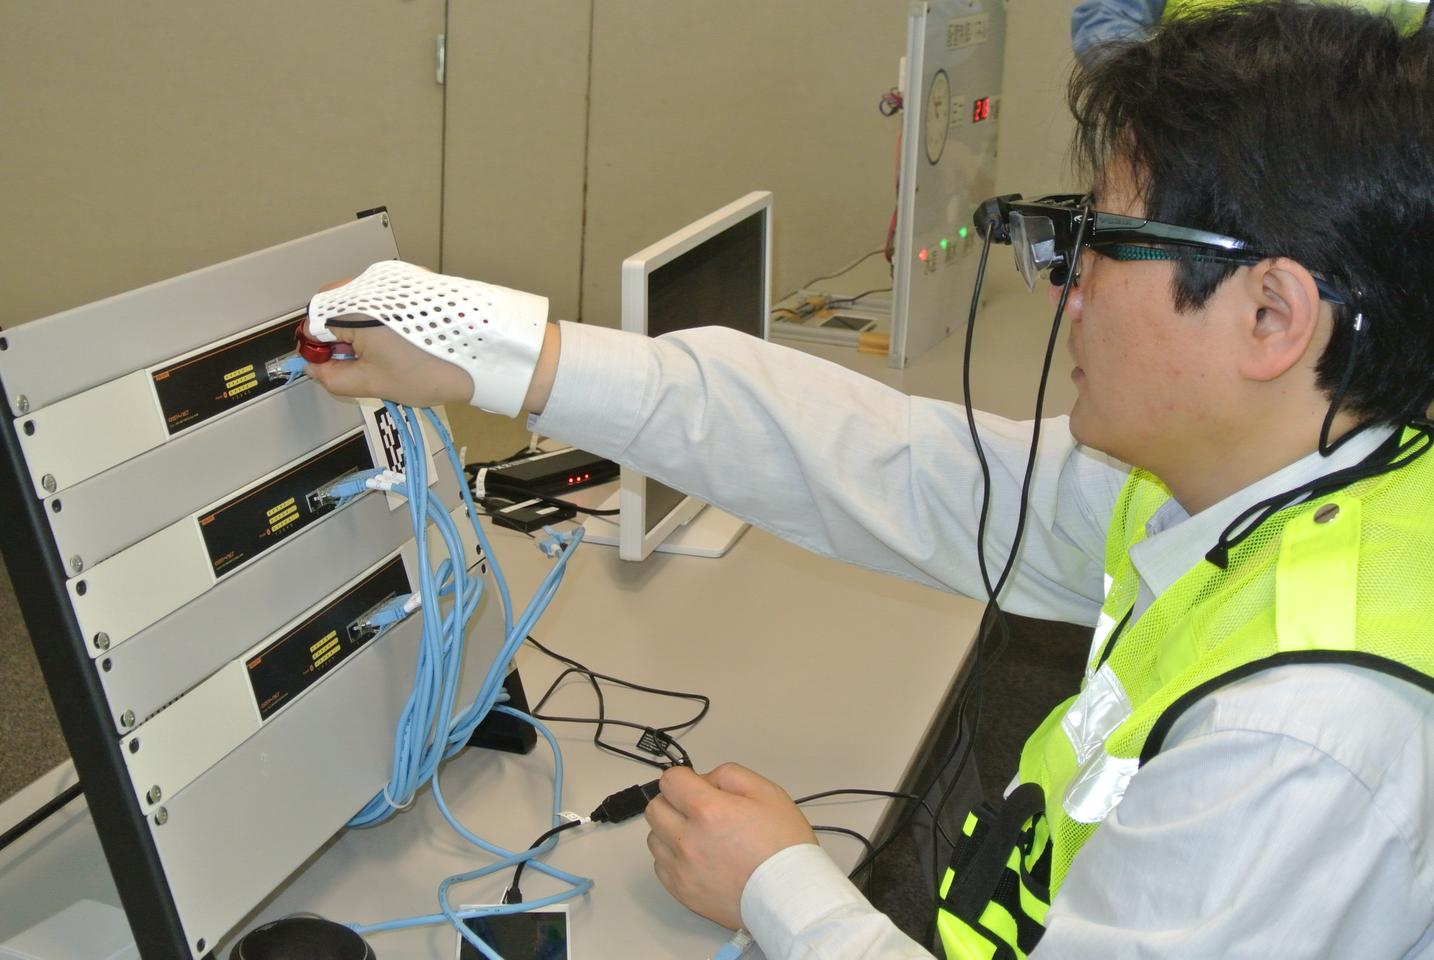 The glove can be used to control a head-mounted display